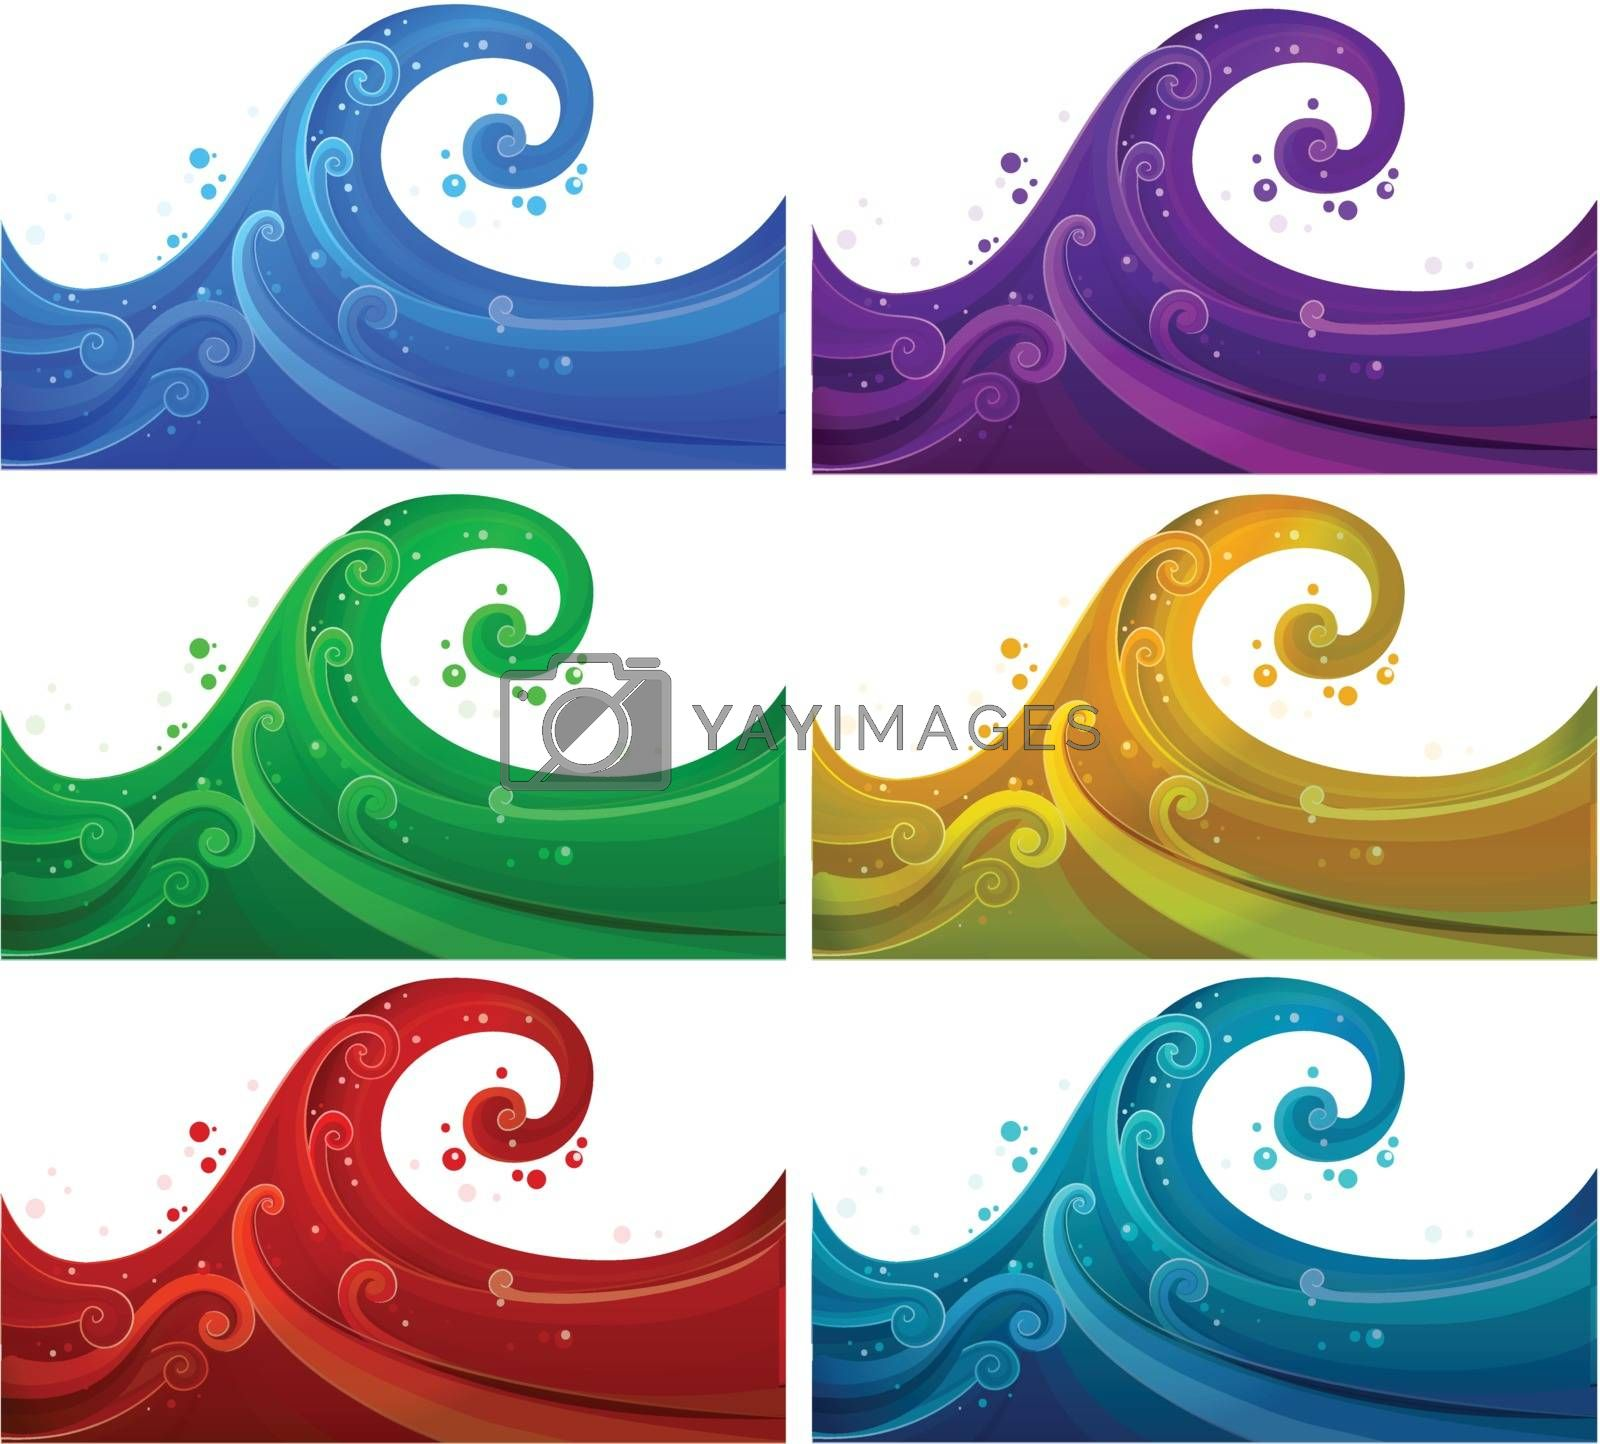 Illustration of the six colorful waves on a white background